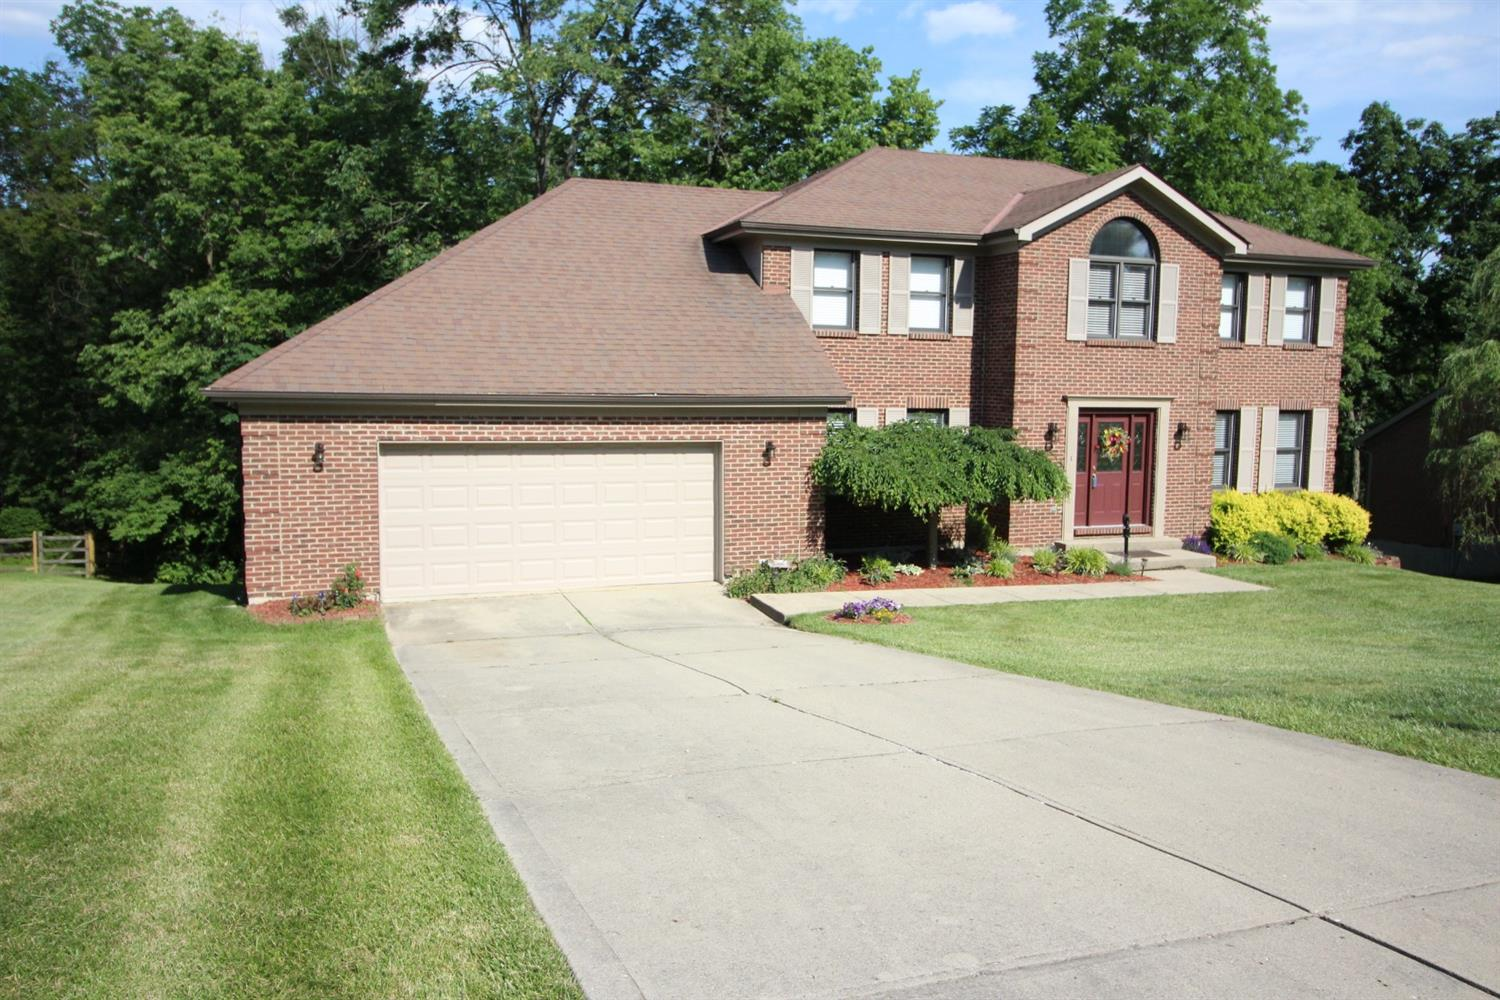 8426 Eagleridge Drive, West Chester, OH 45069